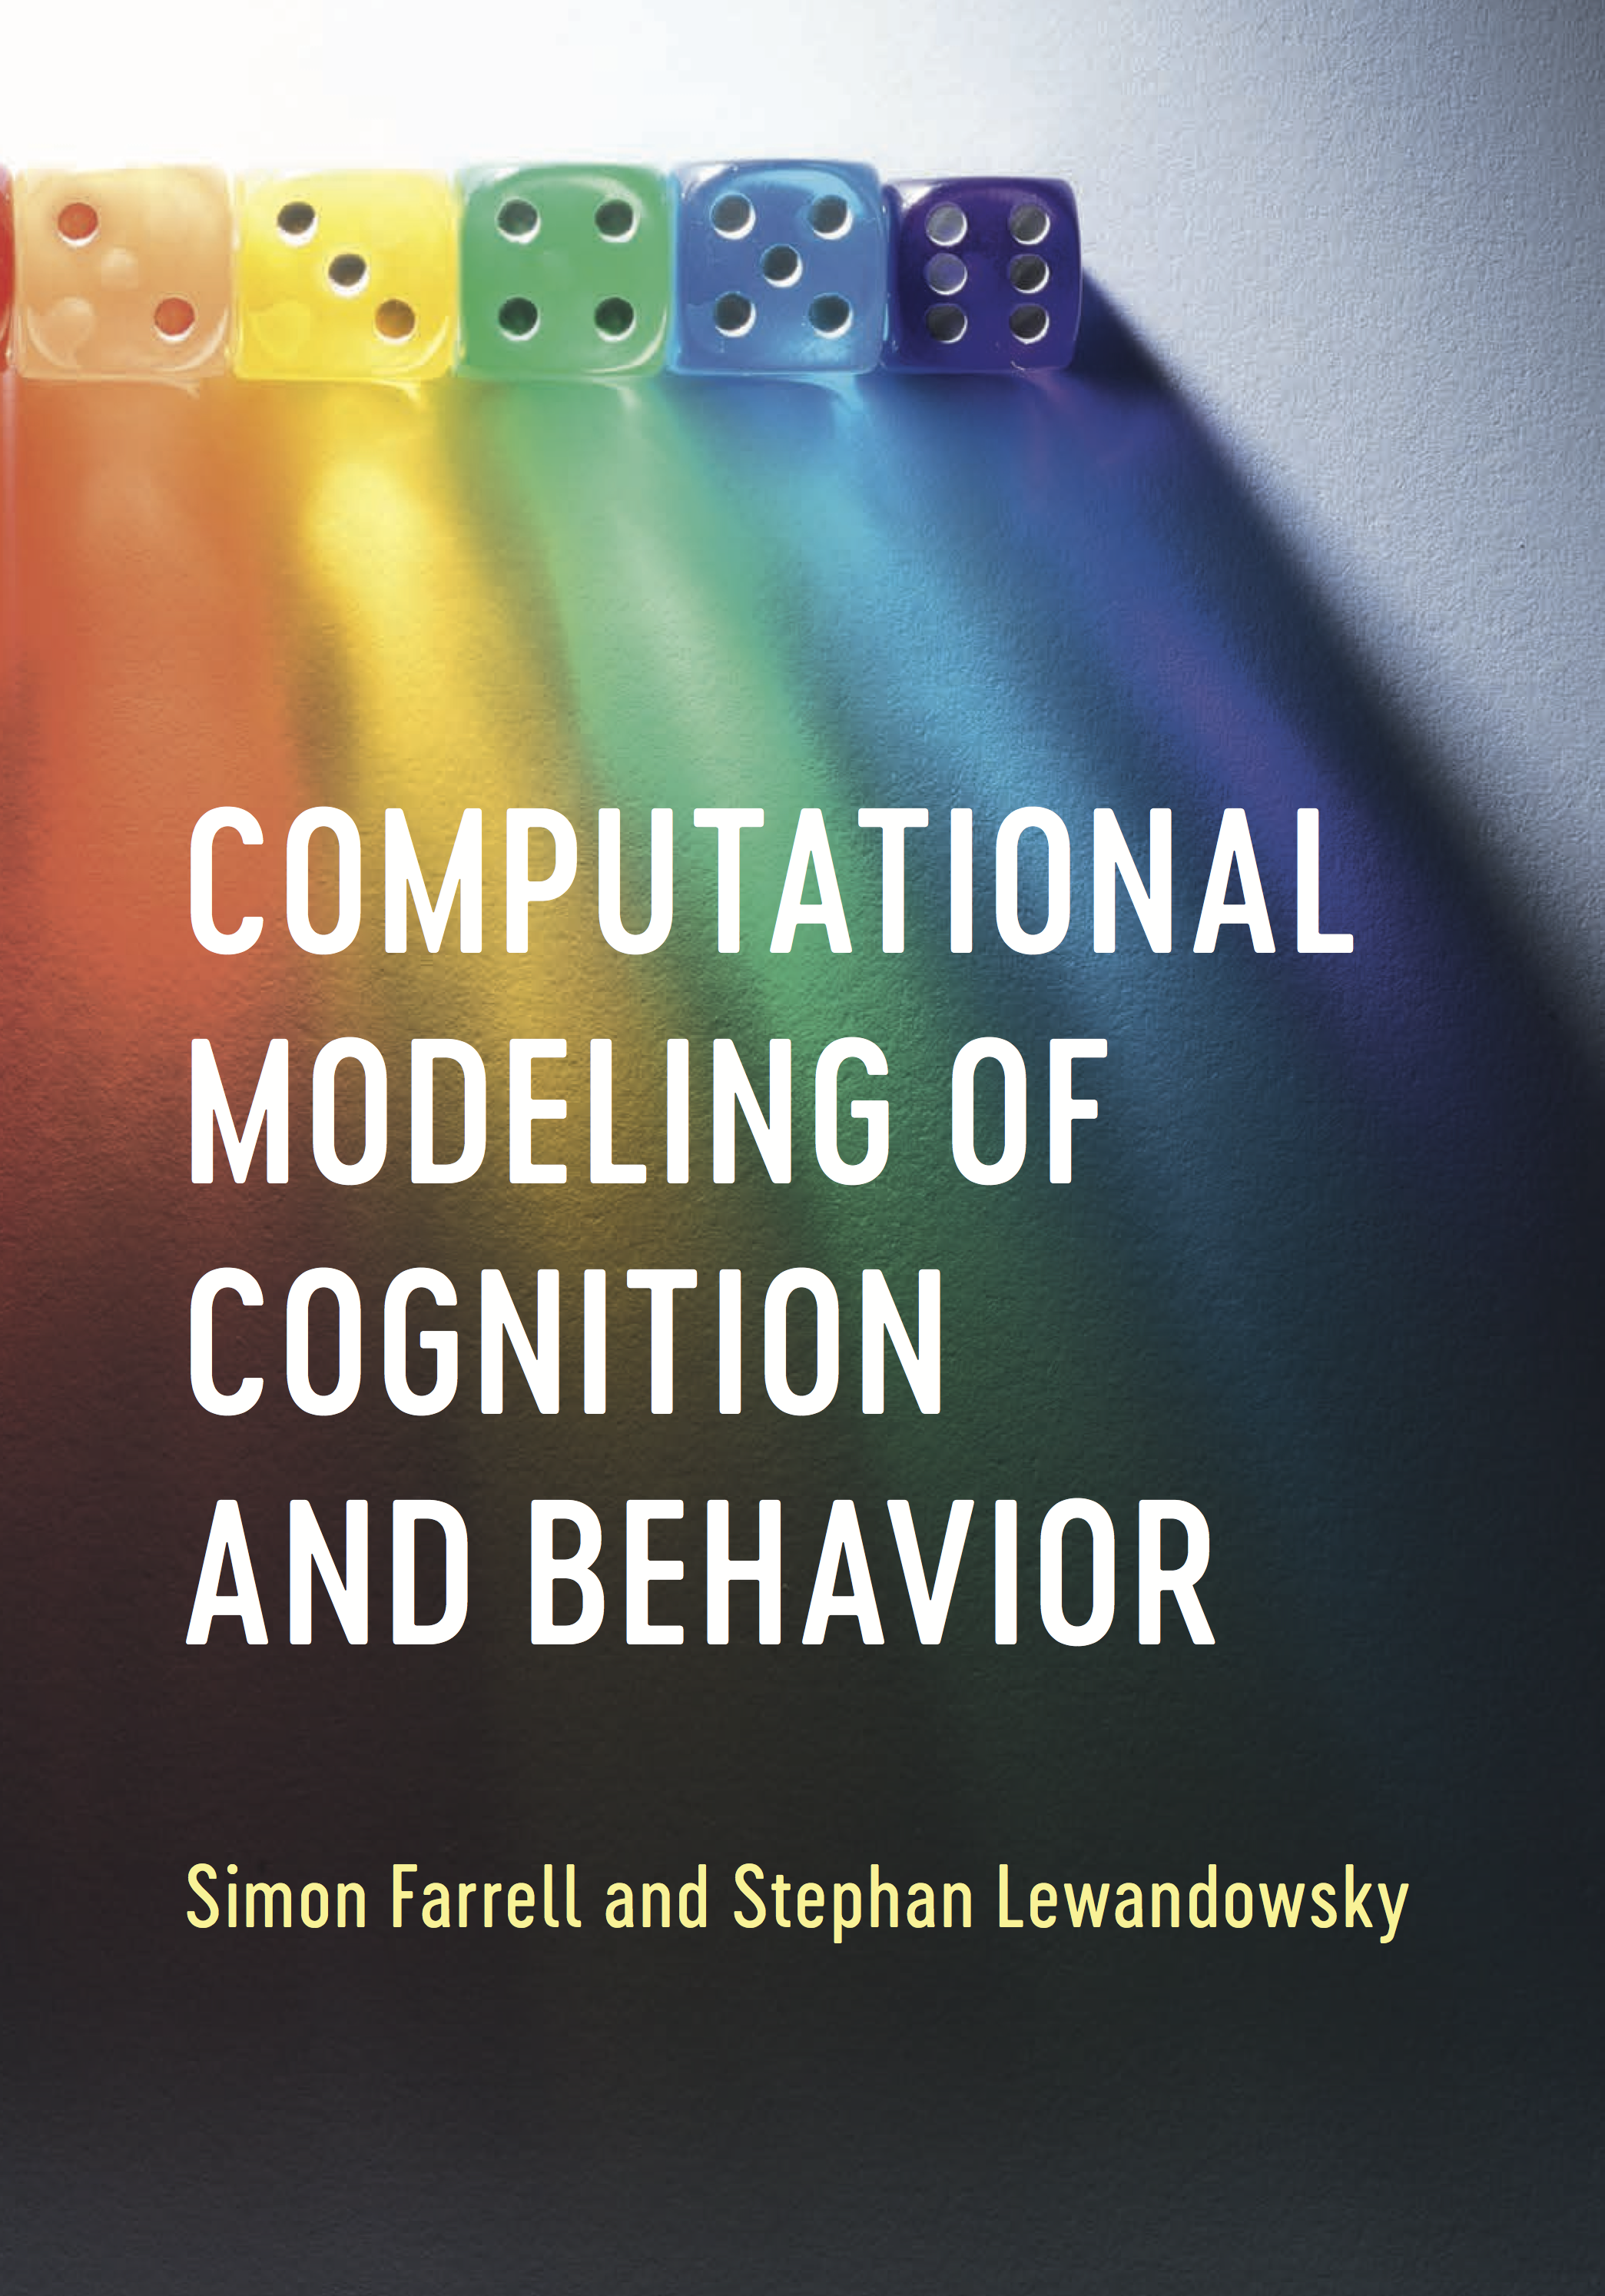 Computational Modeling of Cognition and Behavior logo